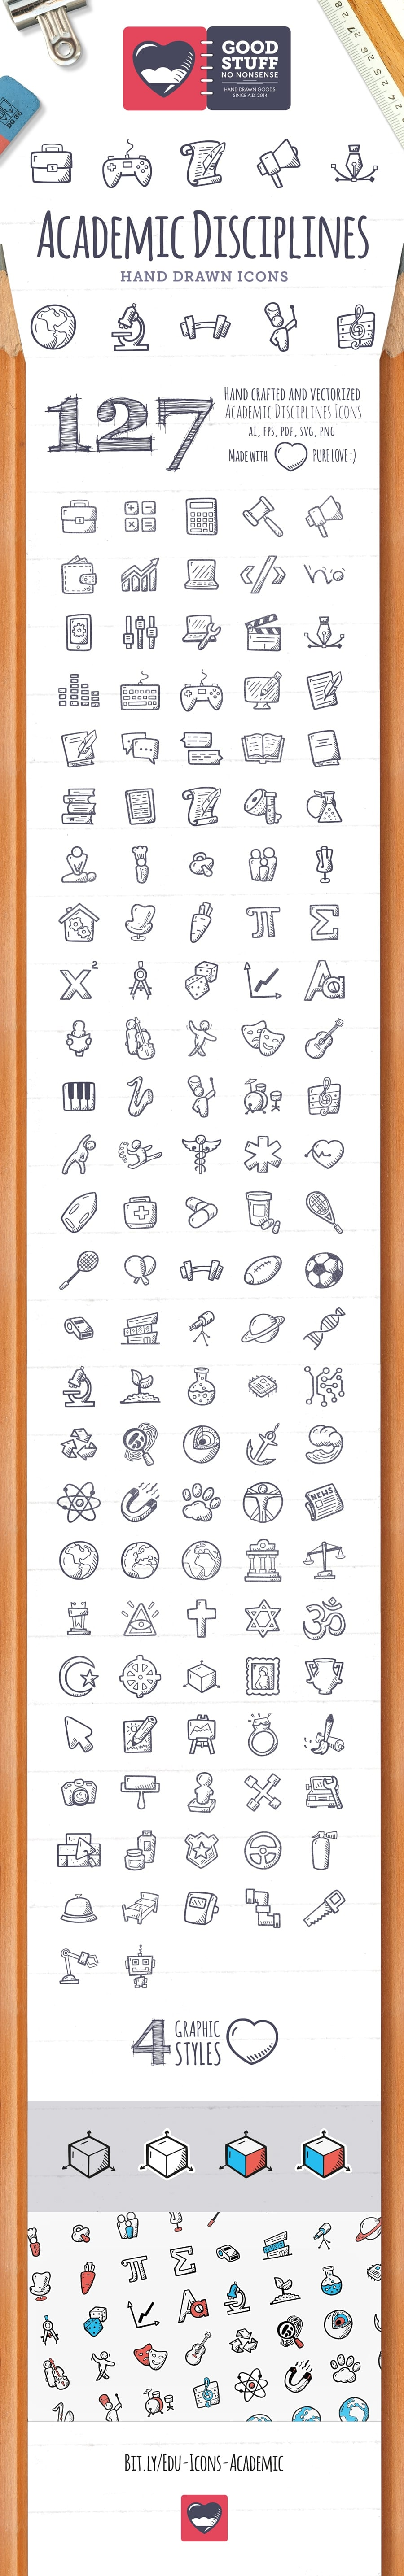 Academic Disciplines Icons - Hand Drawn Icons